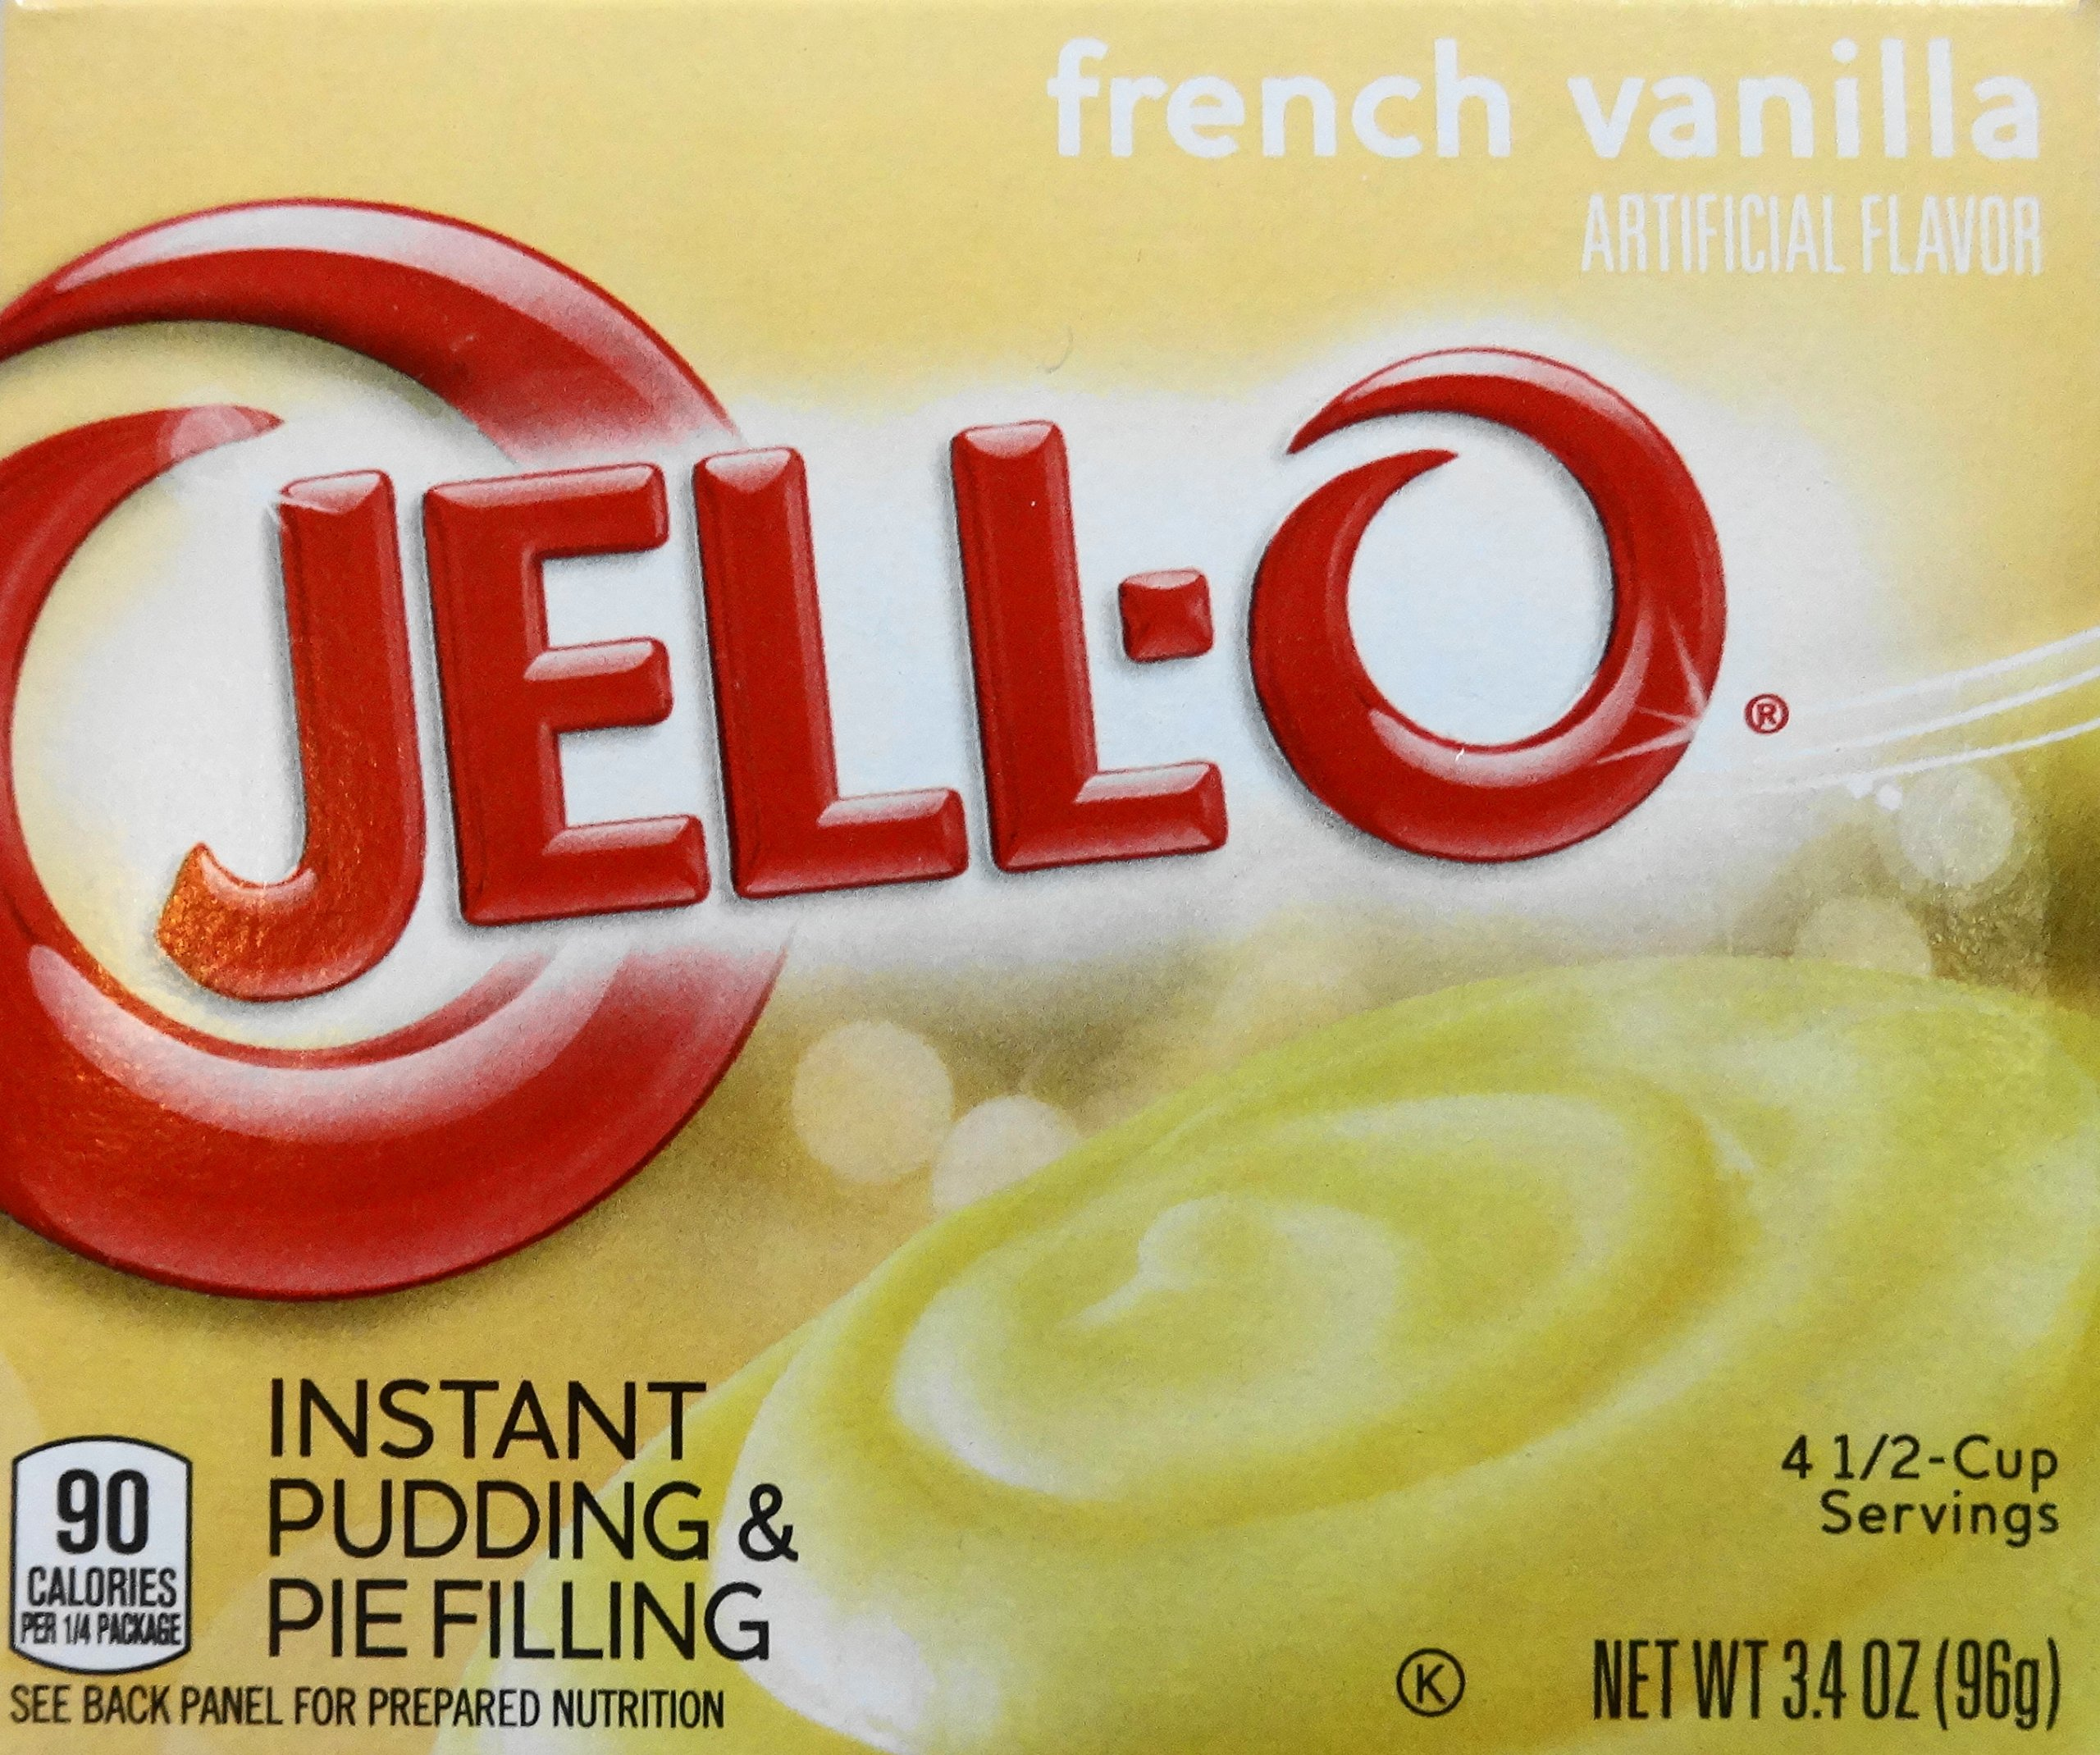 Jell-O French Vanilla Instant Pudding, 3.4 oz (3-Pack)